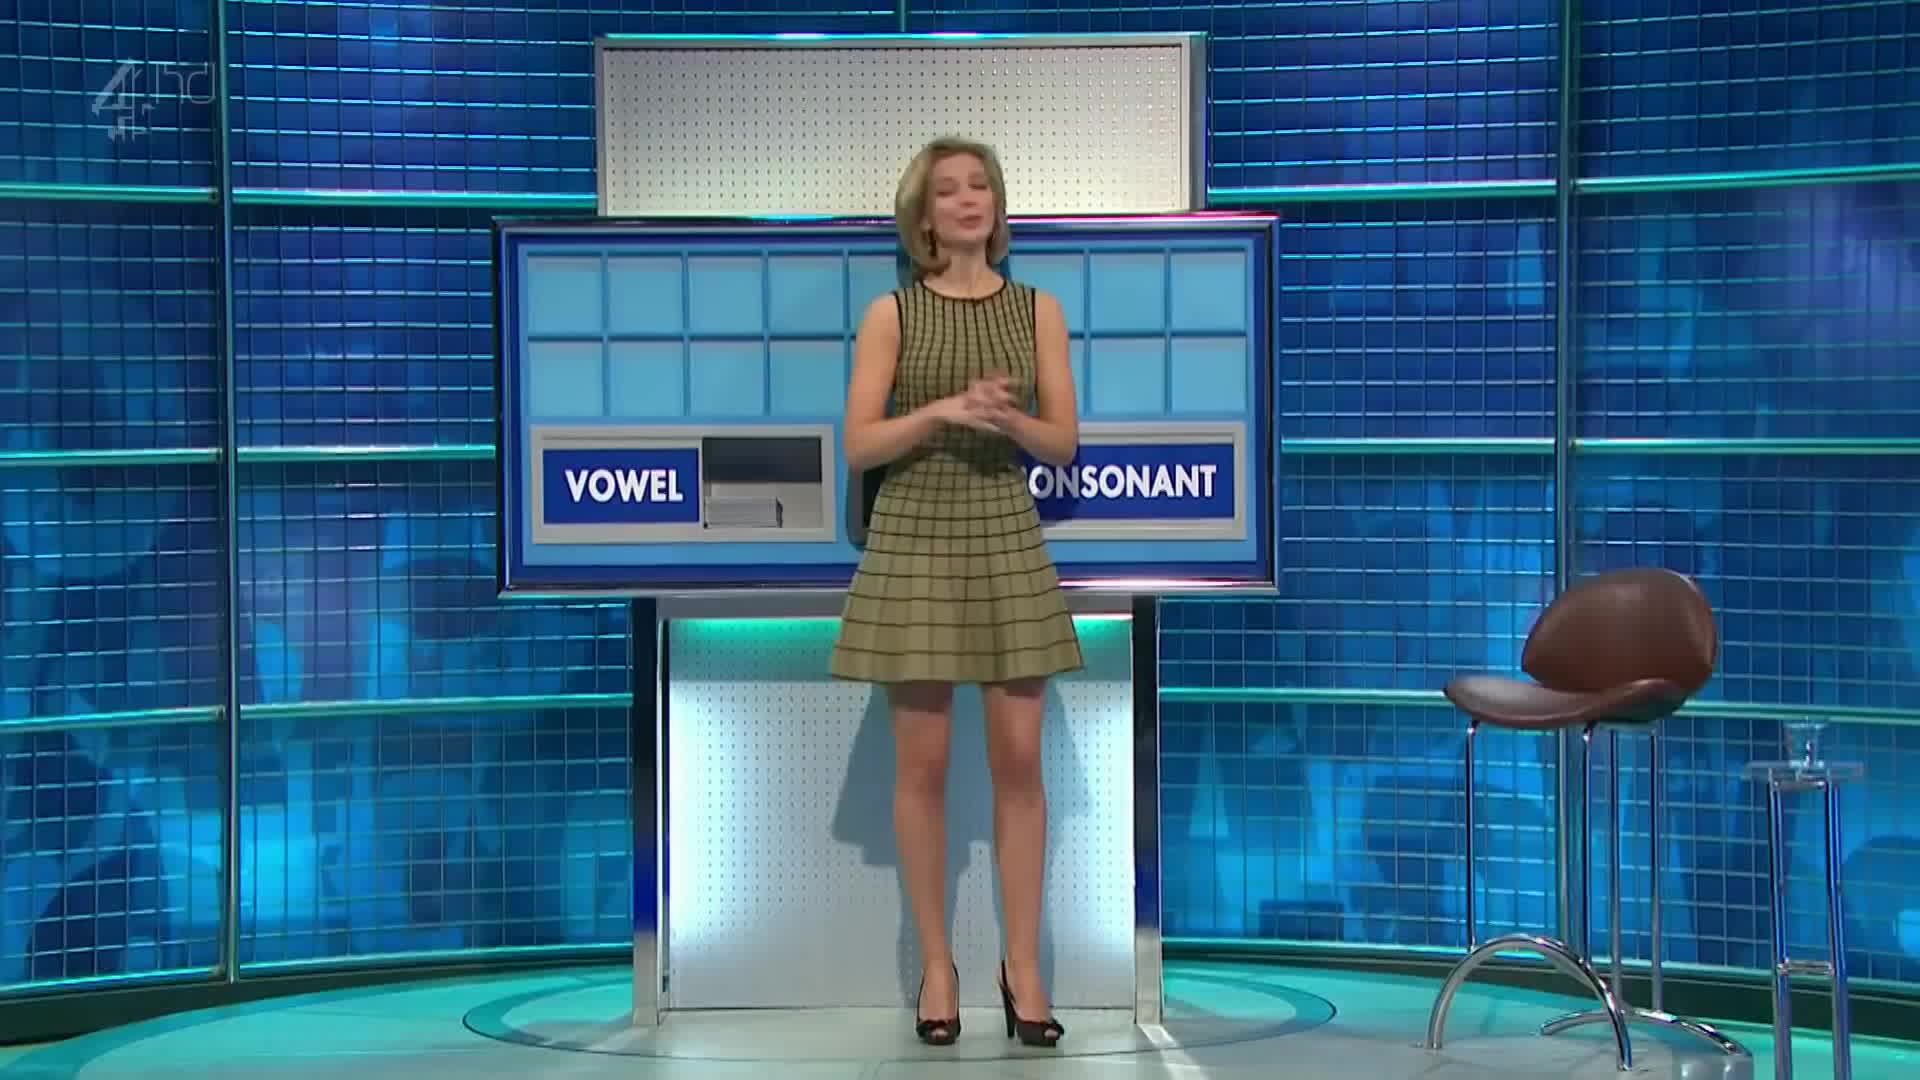 RachelRiley, rachel riley, A grid pattern never looked so good GIFs